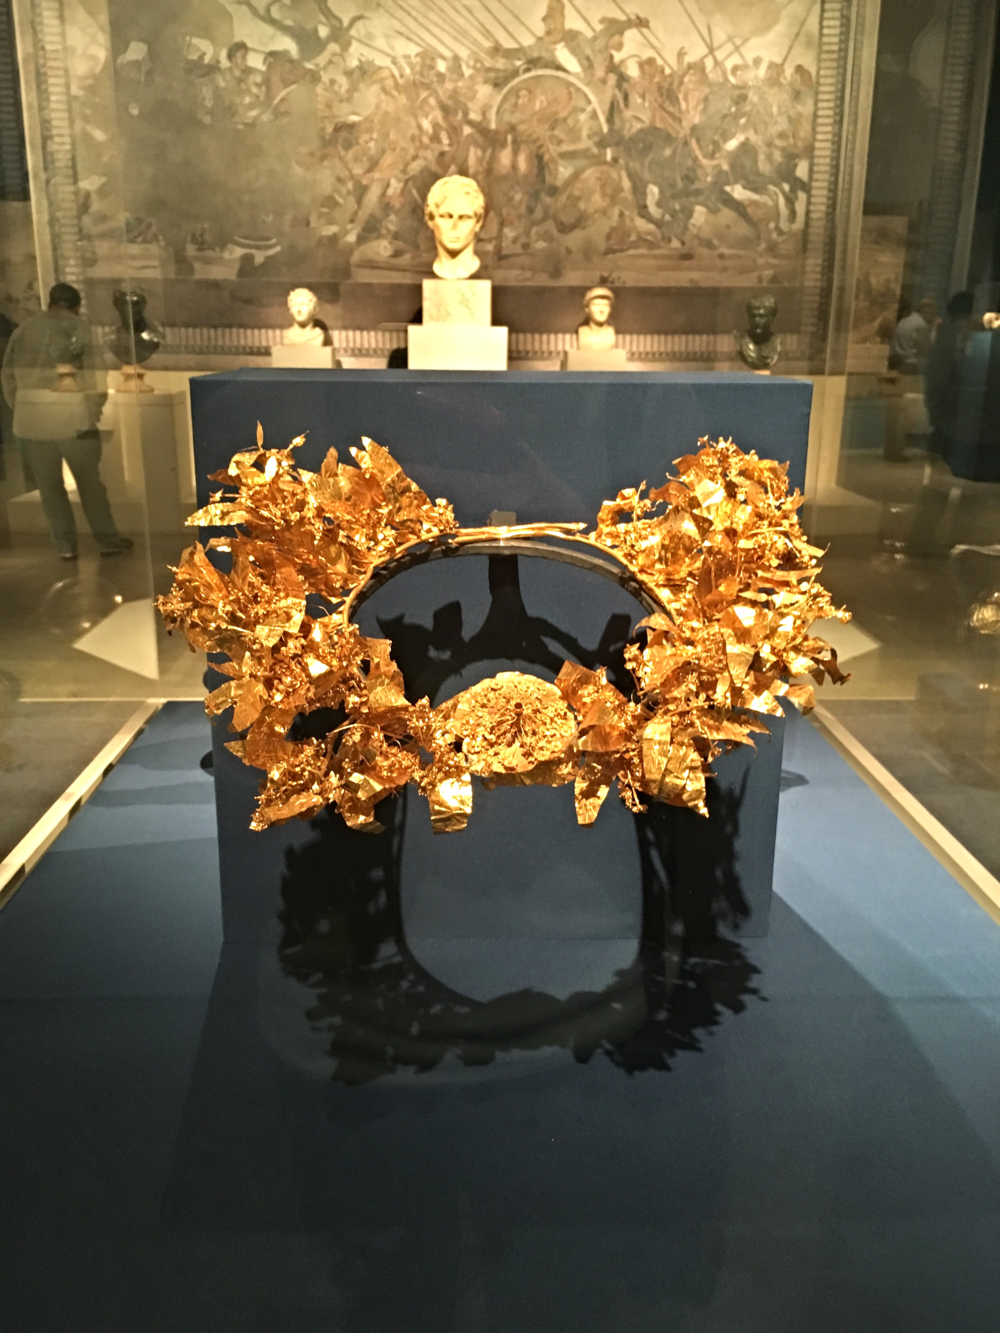 Gold and enamel myrtle wreath. Late Classical period c. 350-325 B.C. Wreaths like these were often placed in tombs to accompany the wealthy owner to the afterlife beyond. Suspect this fellow had no dramas getting through.